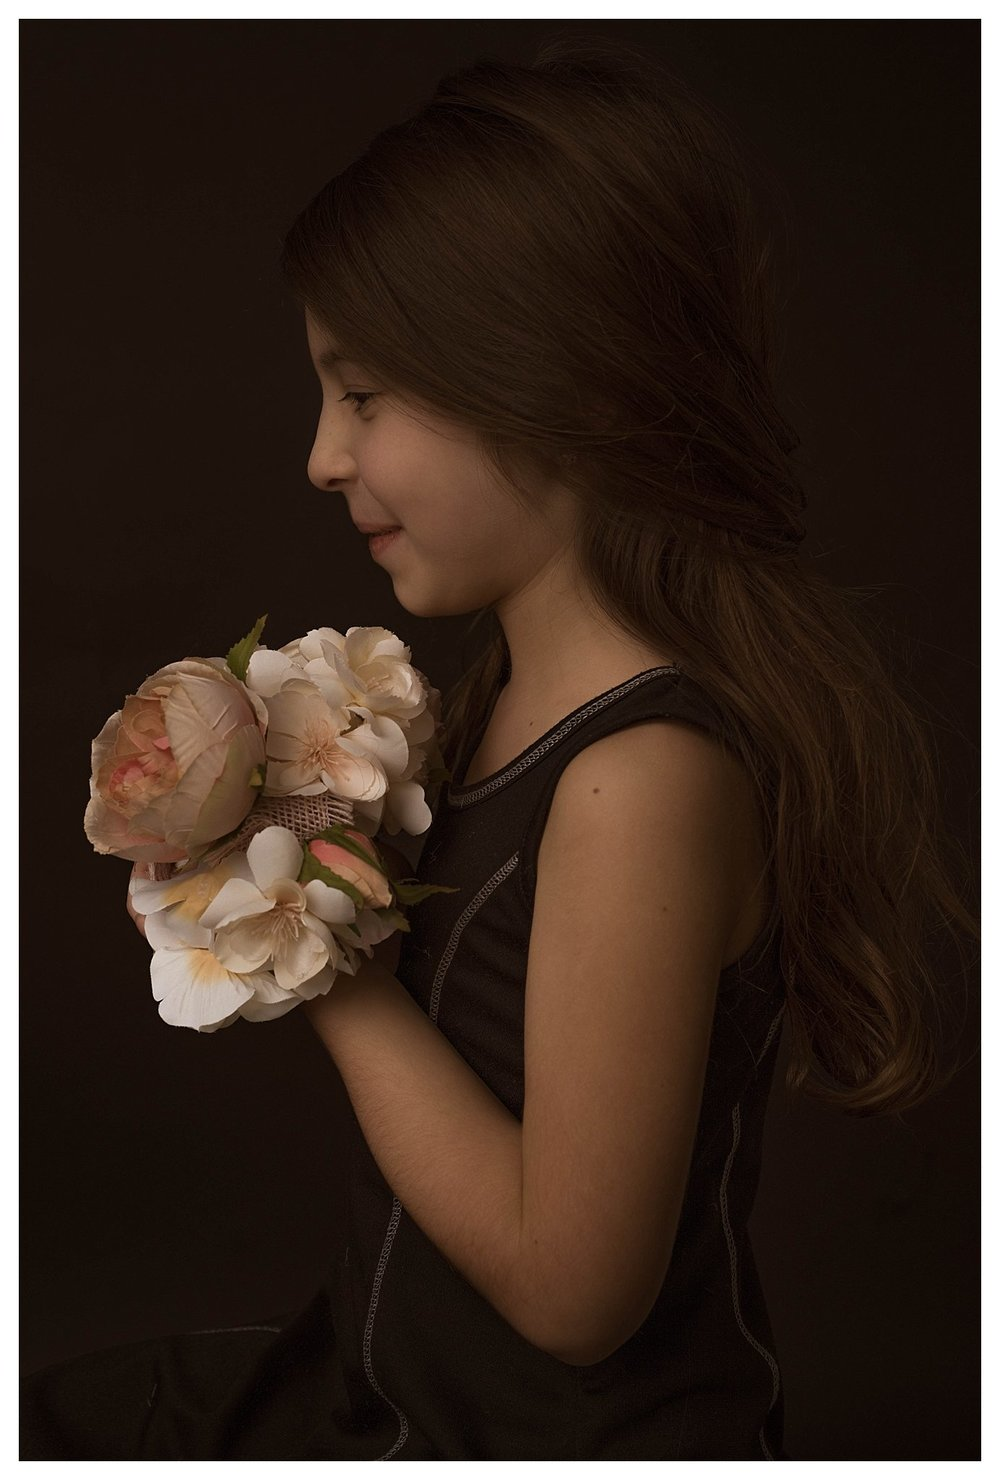 little-girl-with-flowers-portrait-daughter-pictures-ideas-poses-san-antonio-photographer.jpg